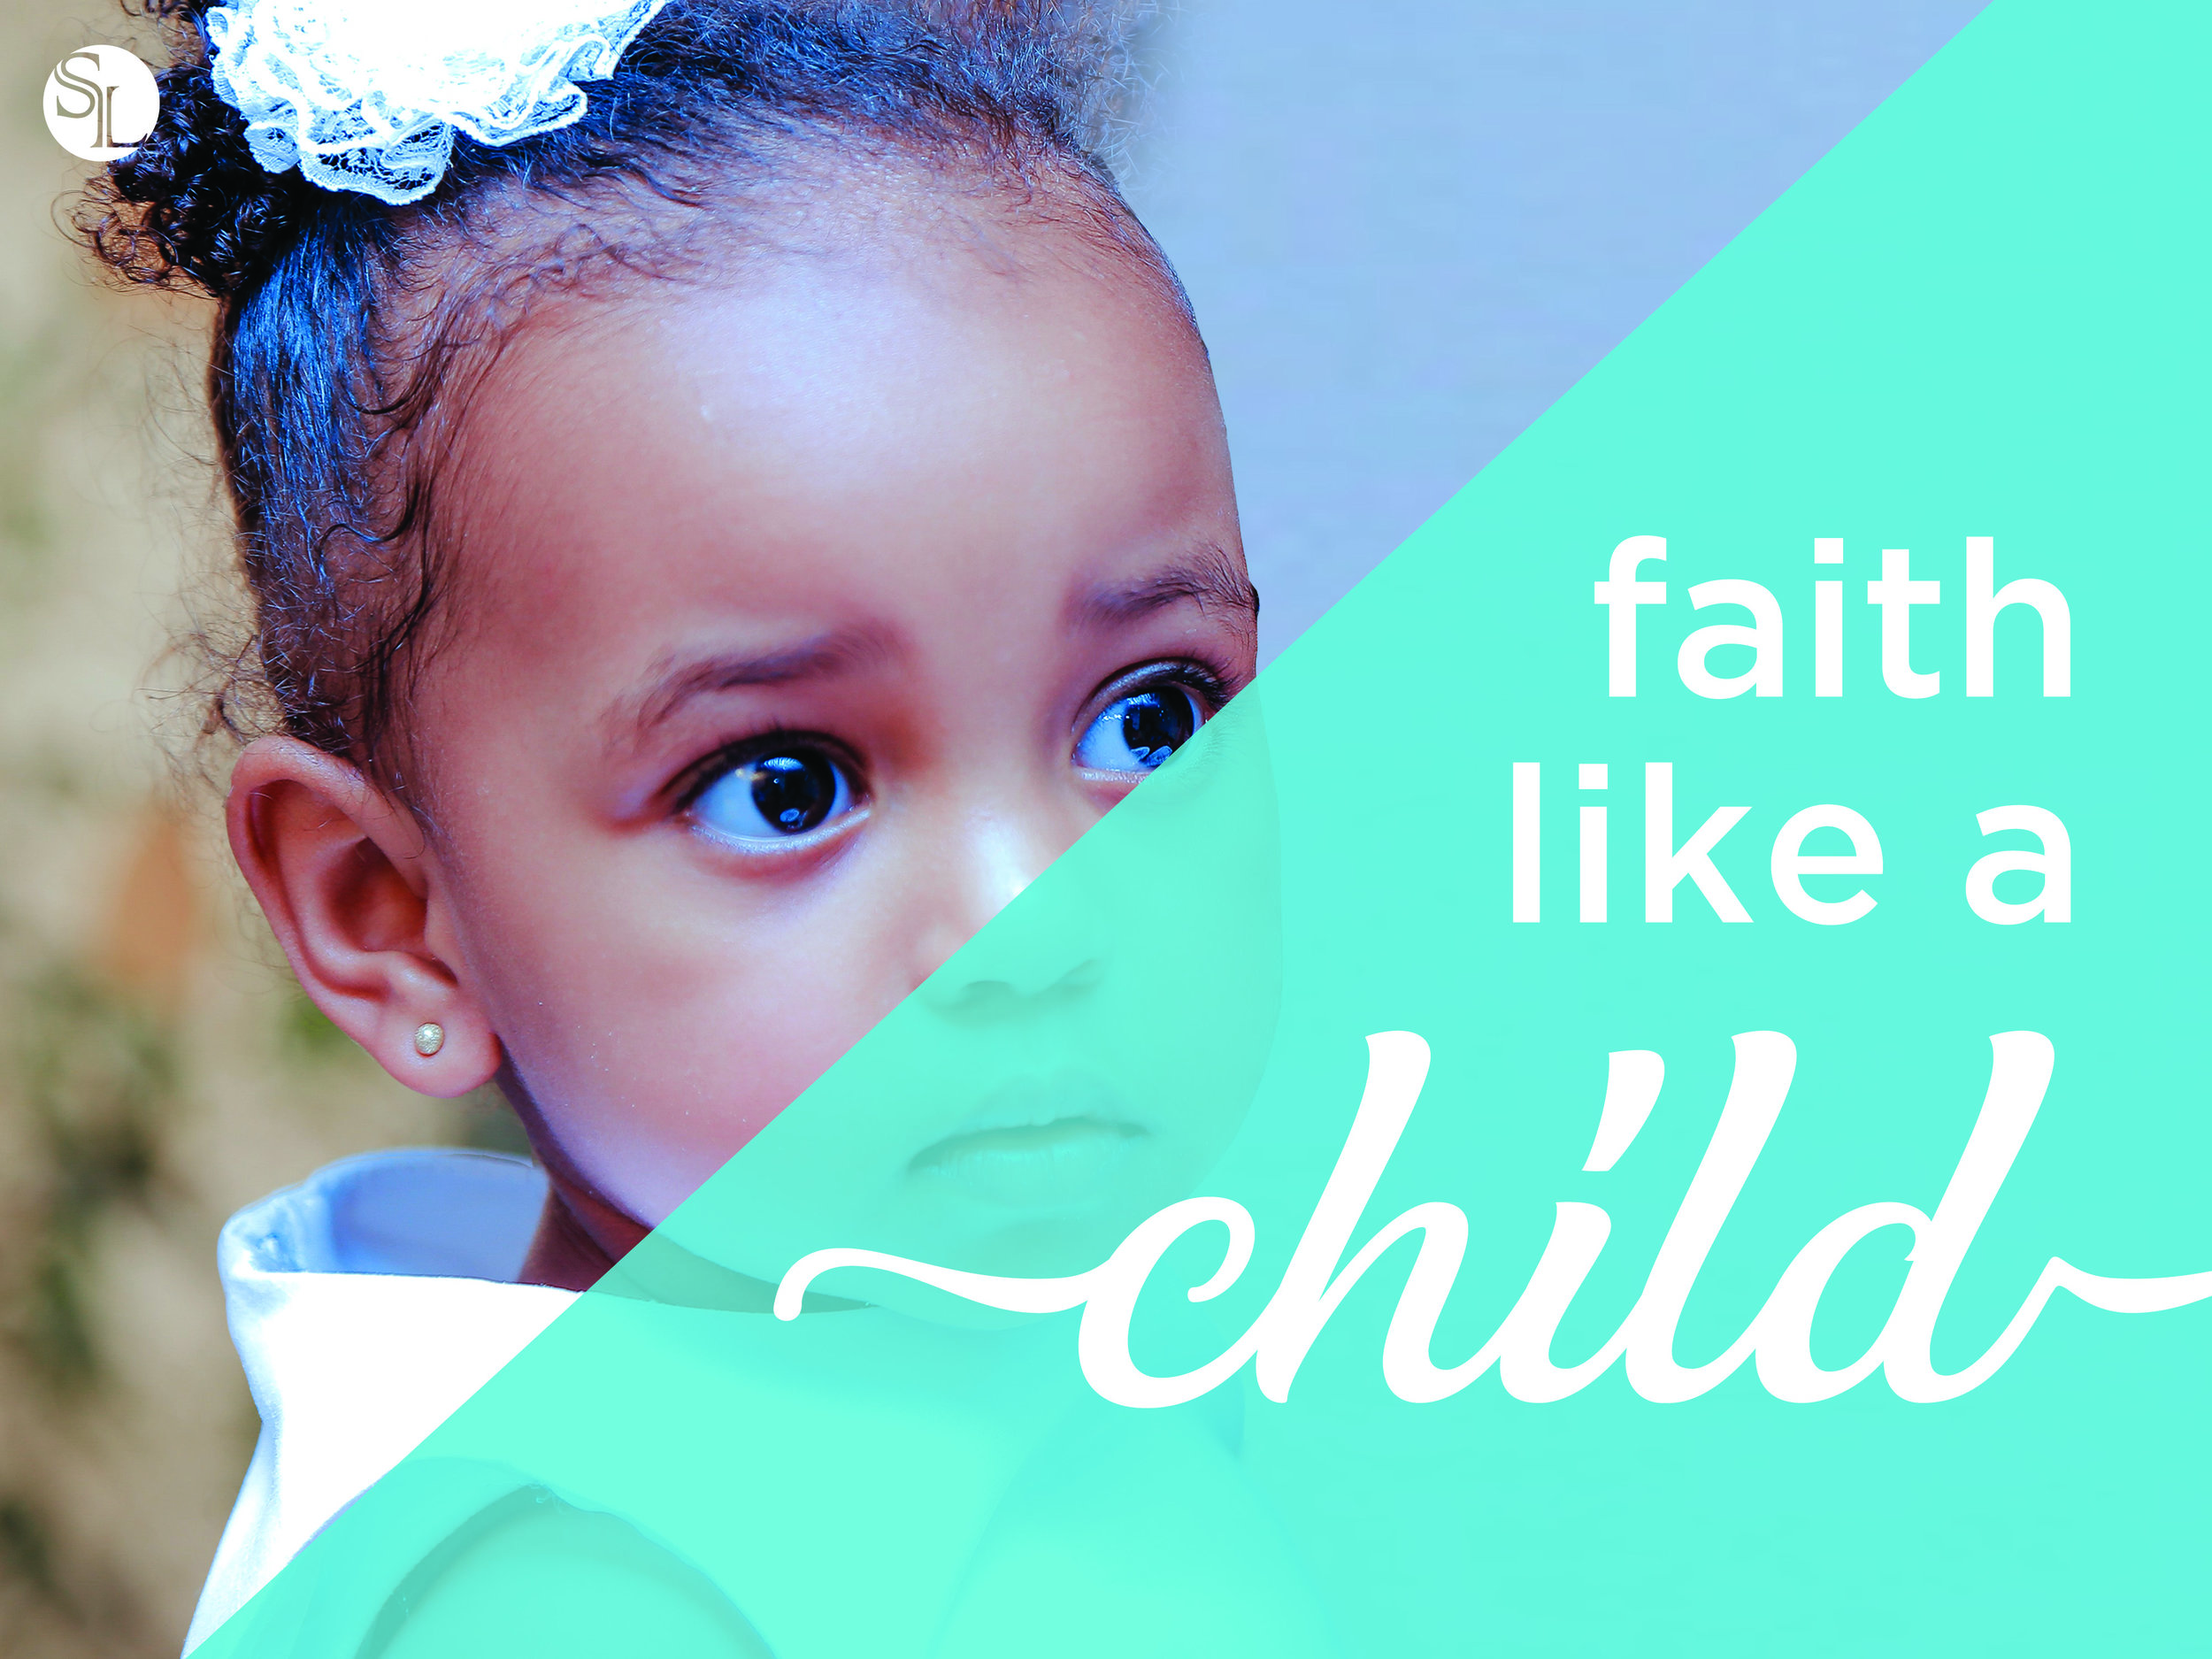 Faith like a child.jpg